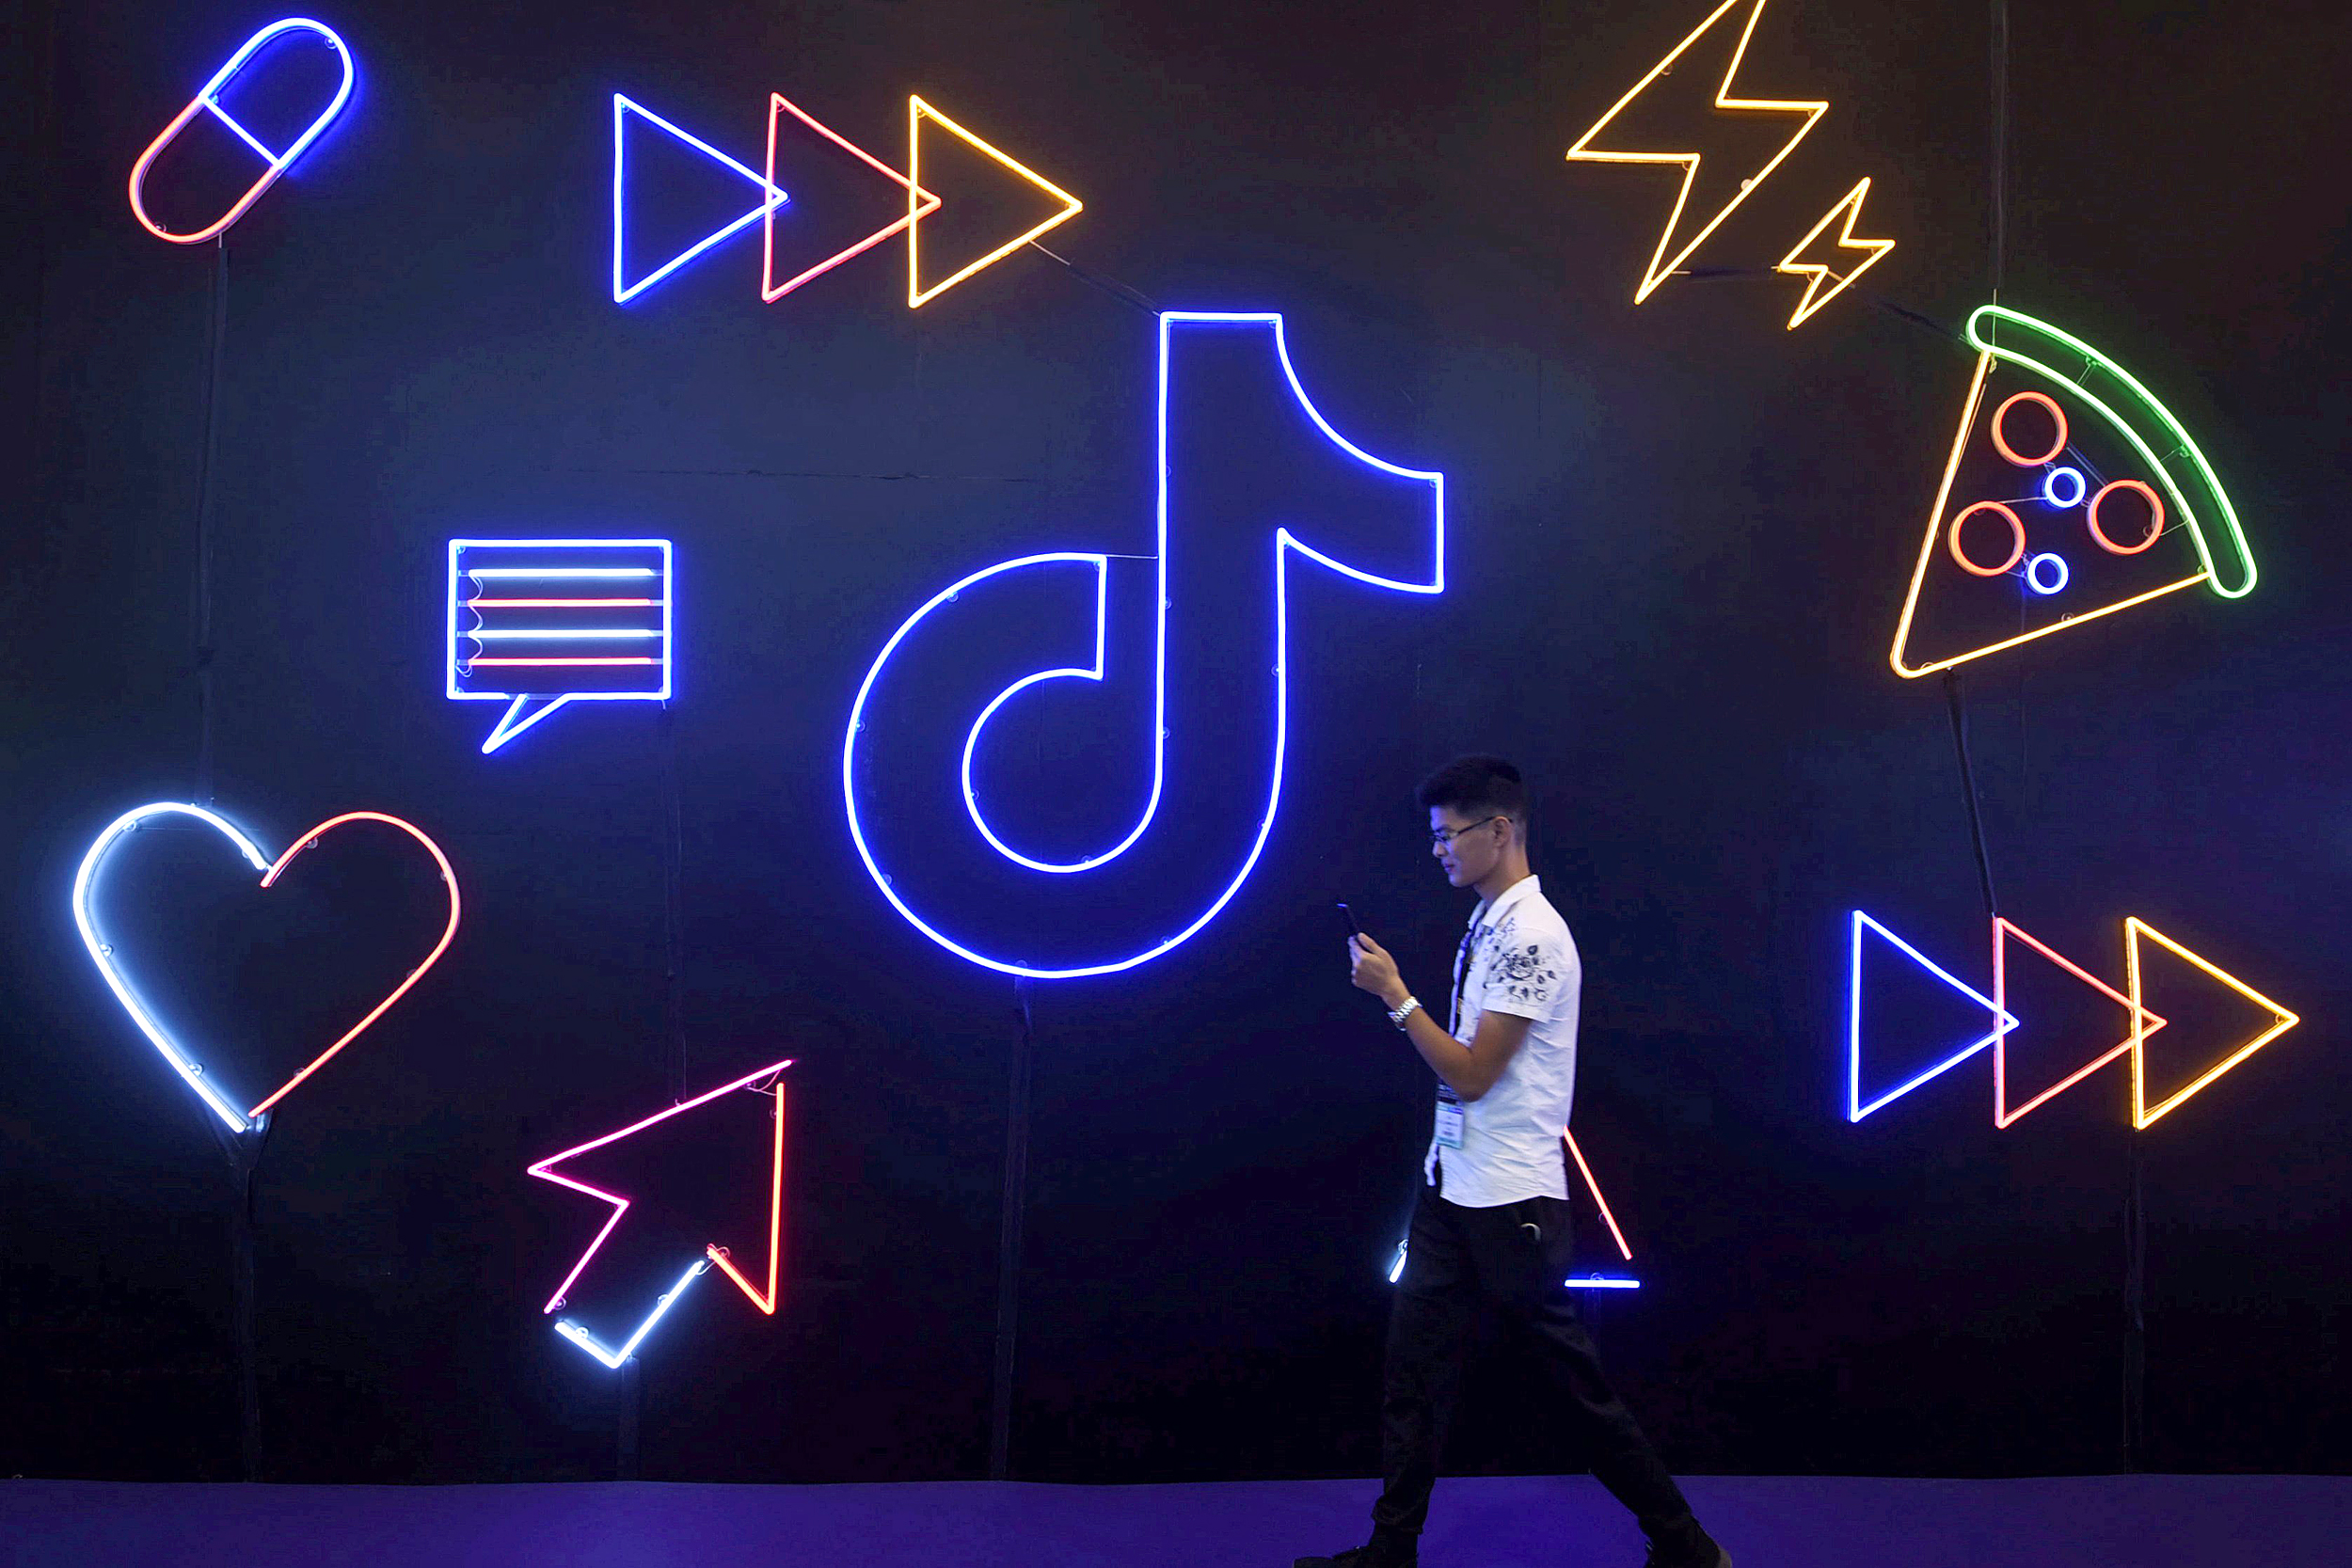 TikTok has new mental health resources for its users. Some experts say it's a good start.